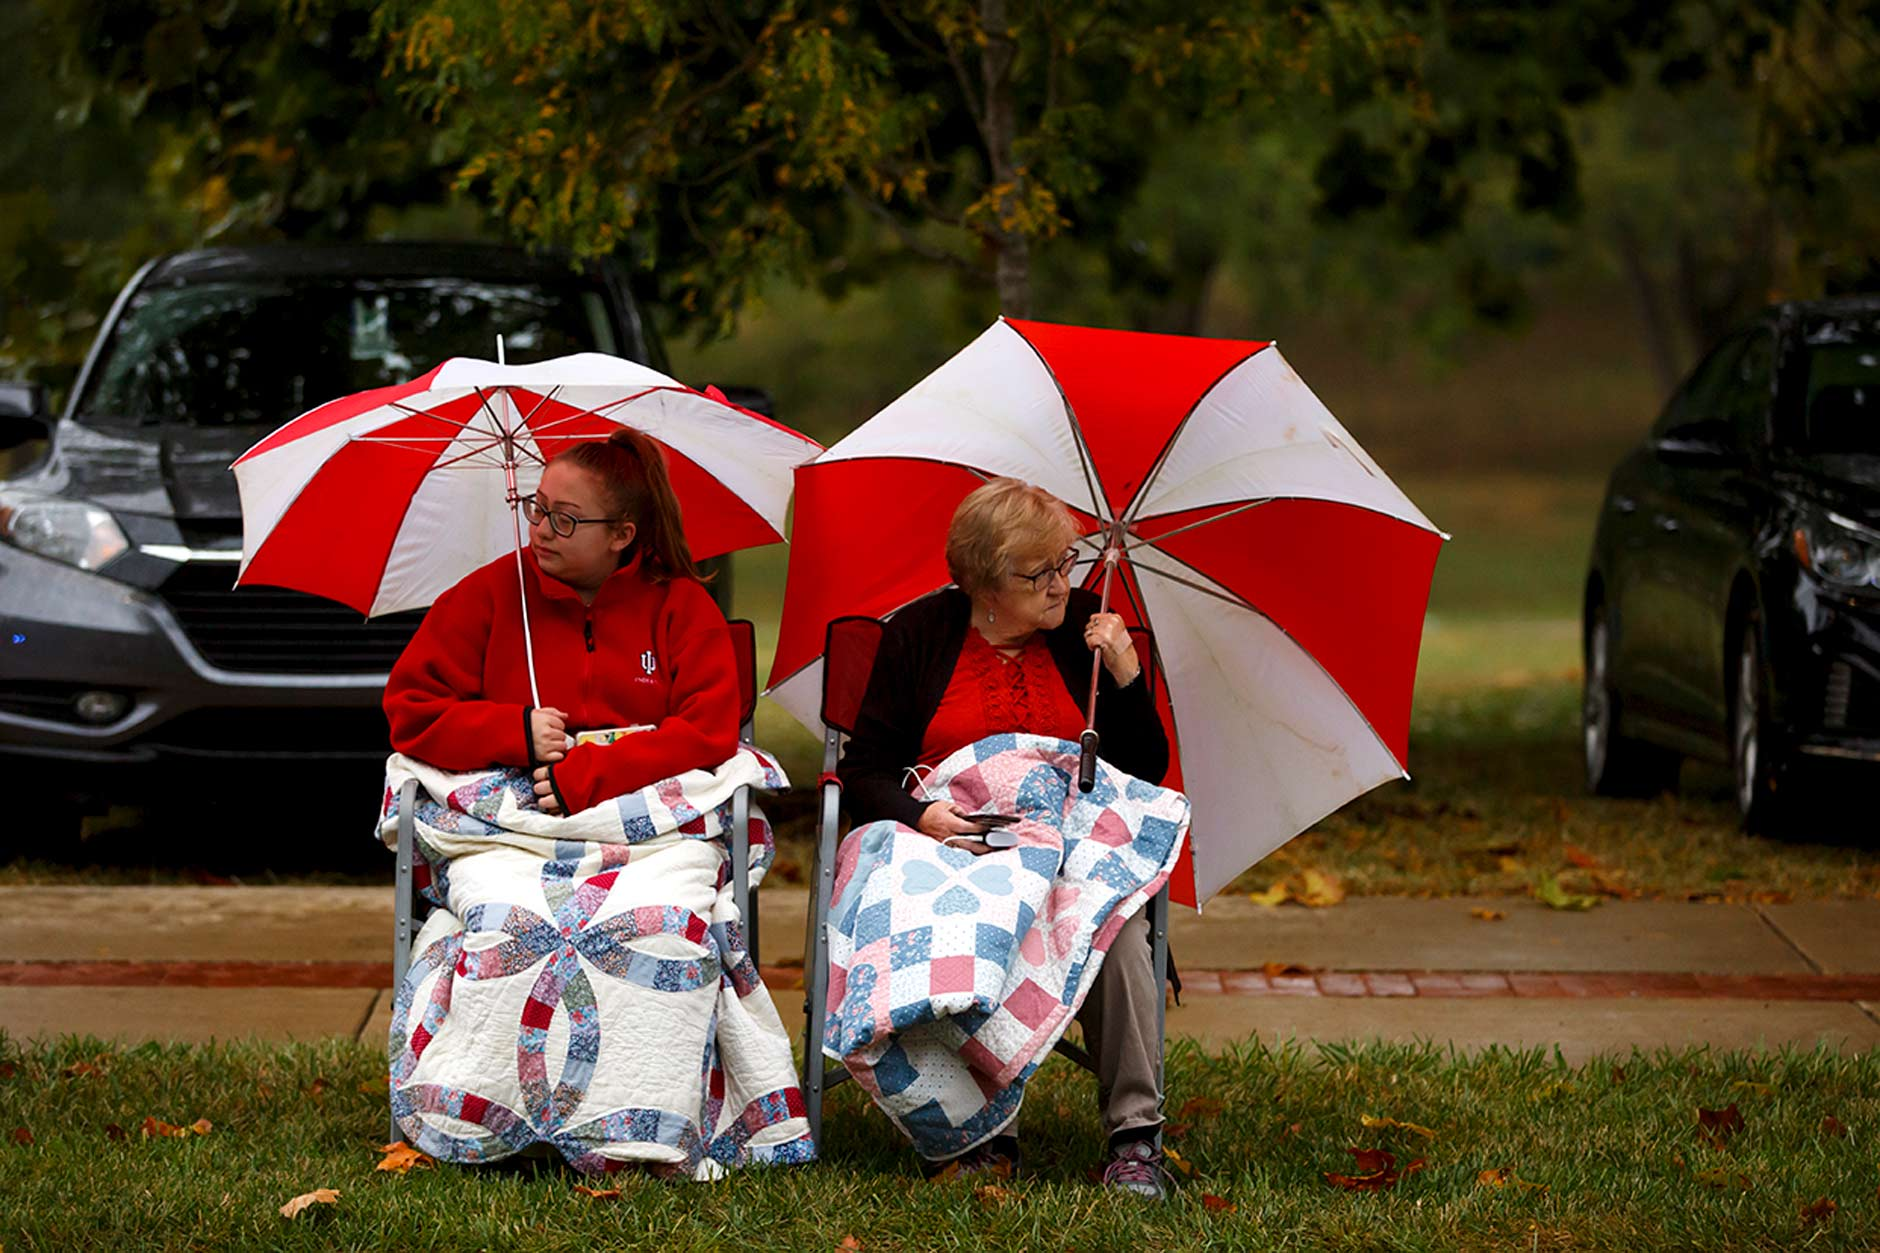 People watch the Indiana University Bloomington Homecoming Parade on Friday, Oct. 11, 2019. (James Brosher/Indiana University)